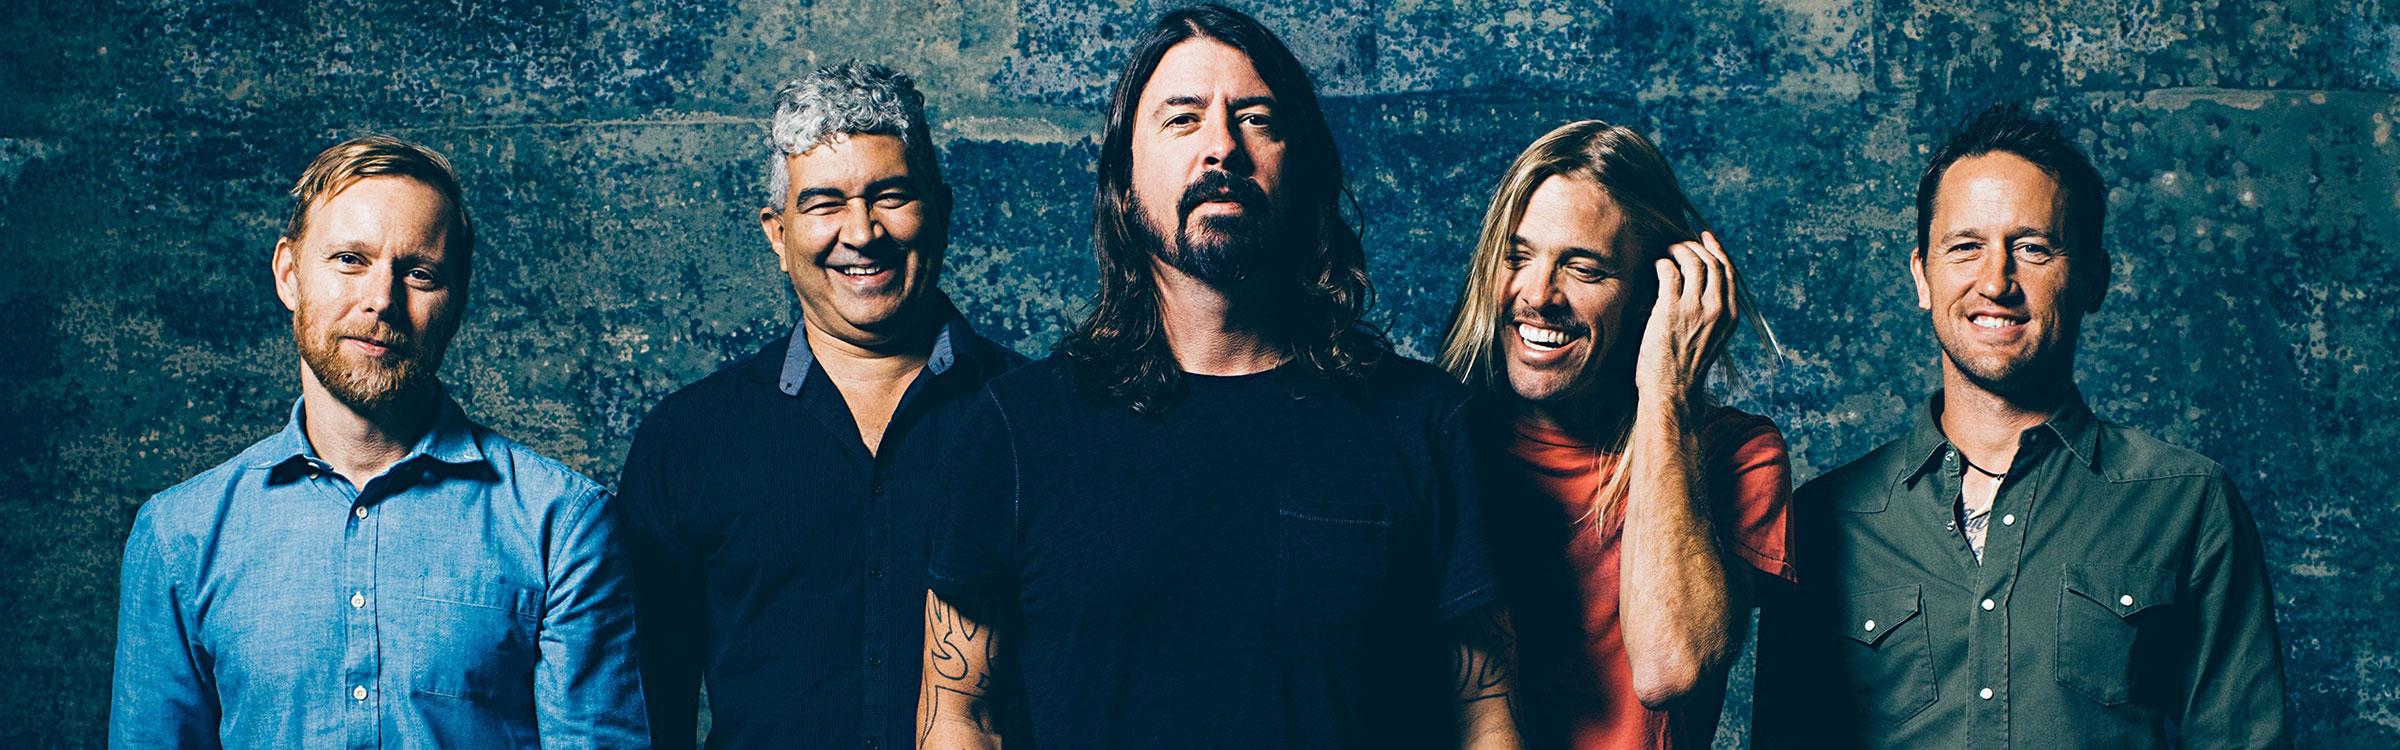 Foo fighters 012